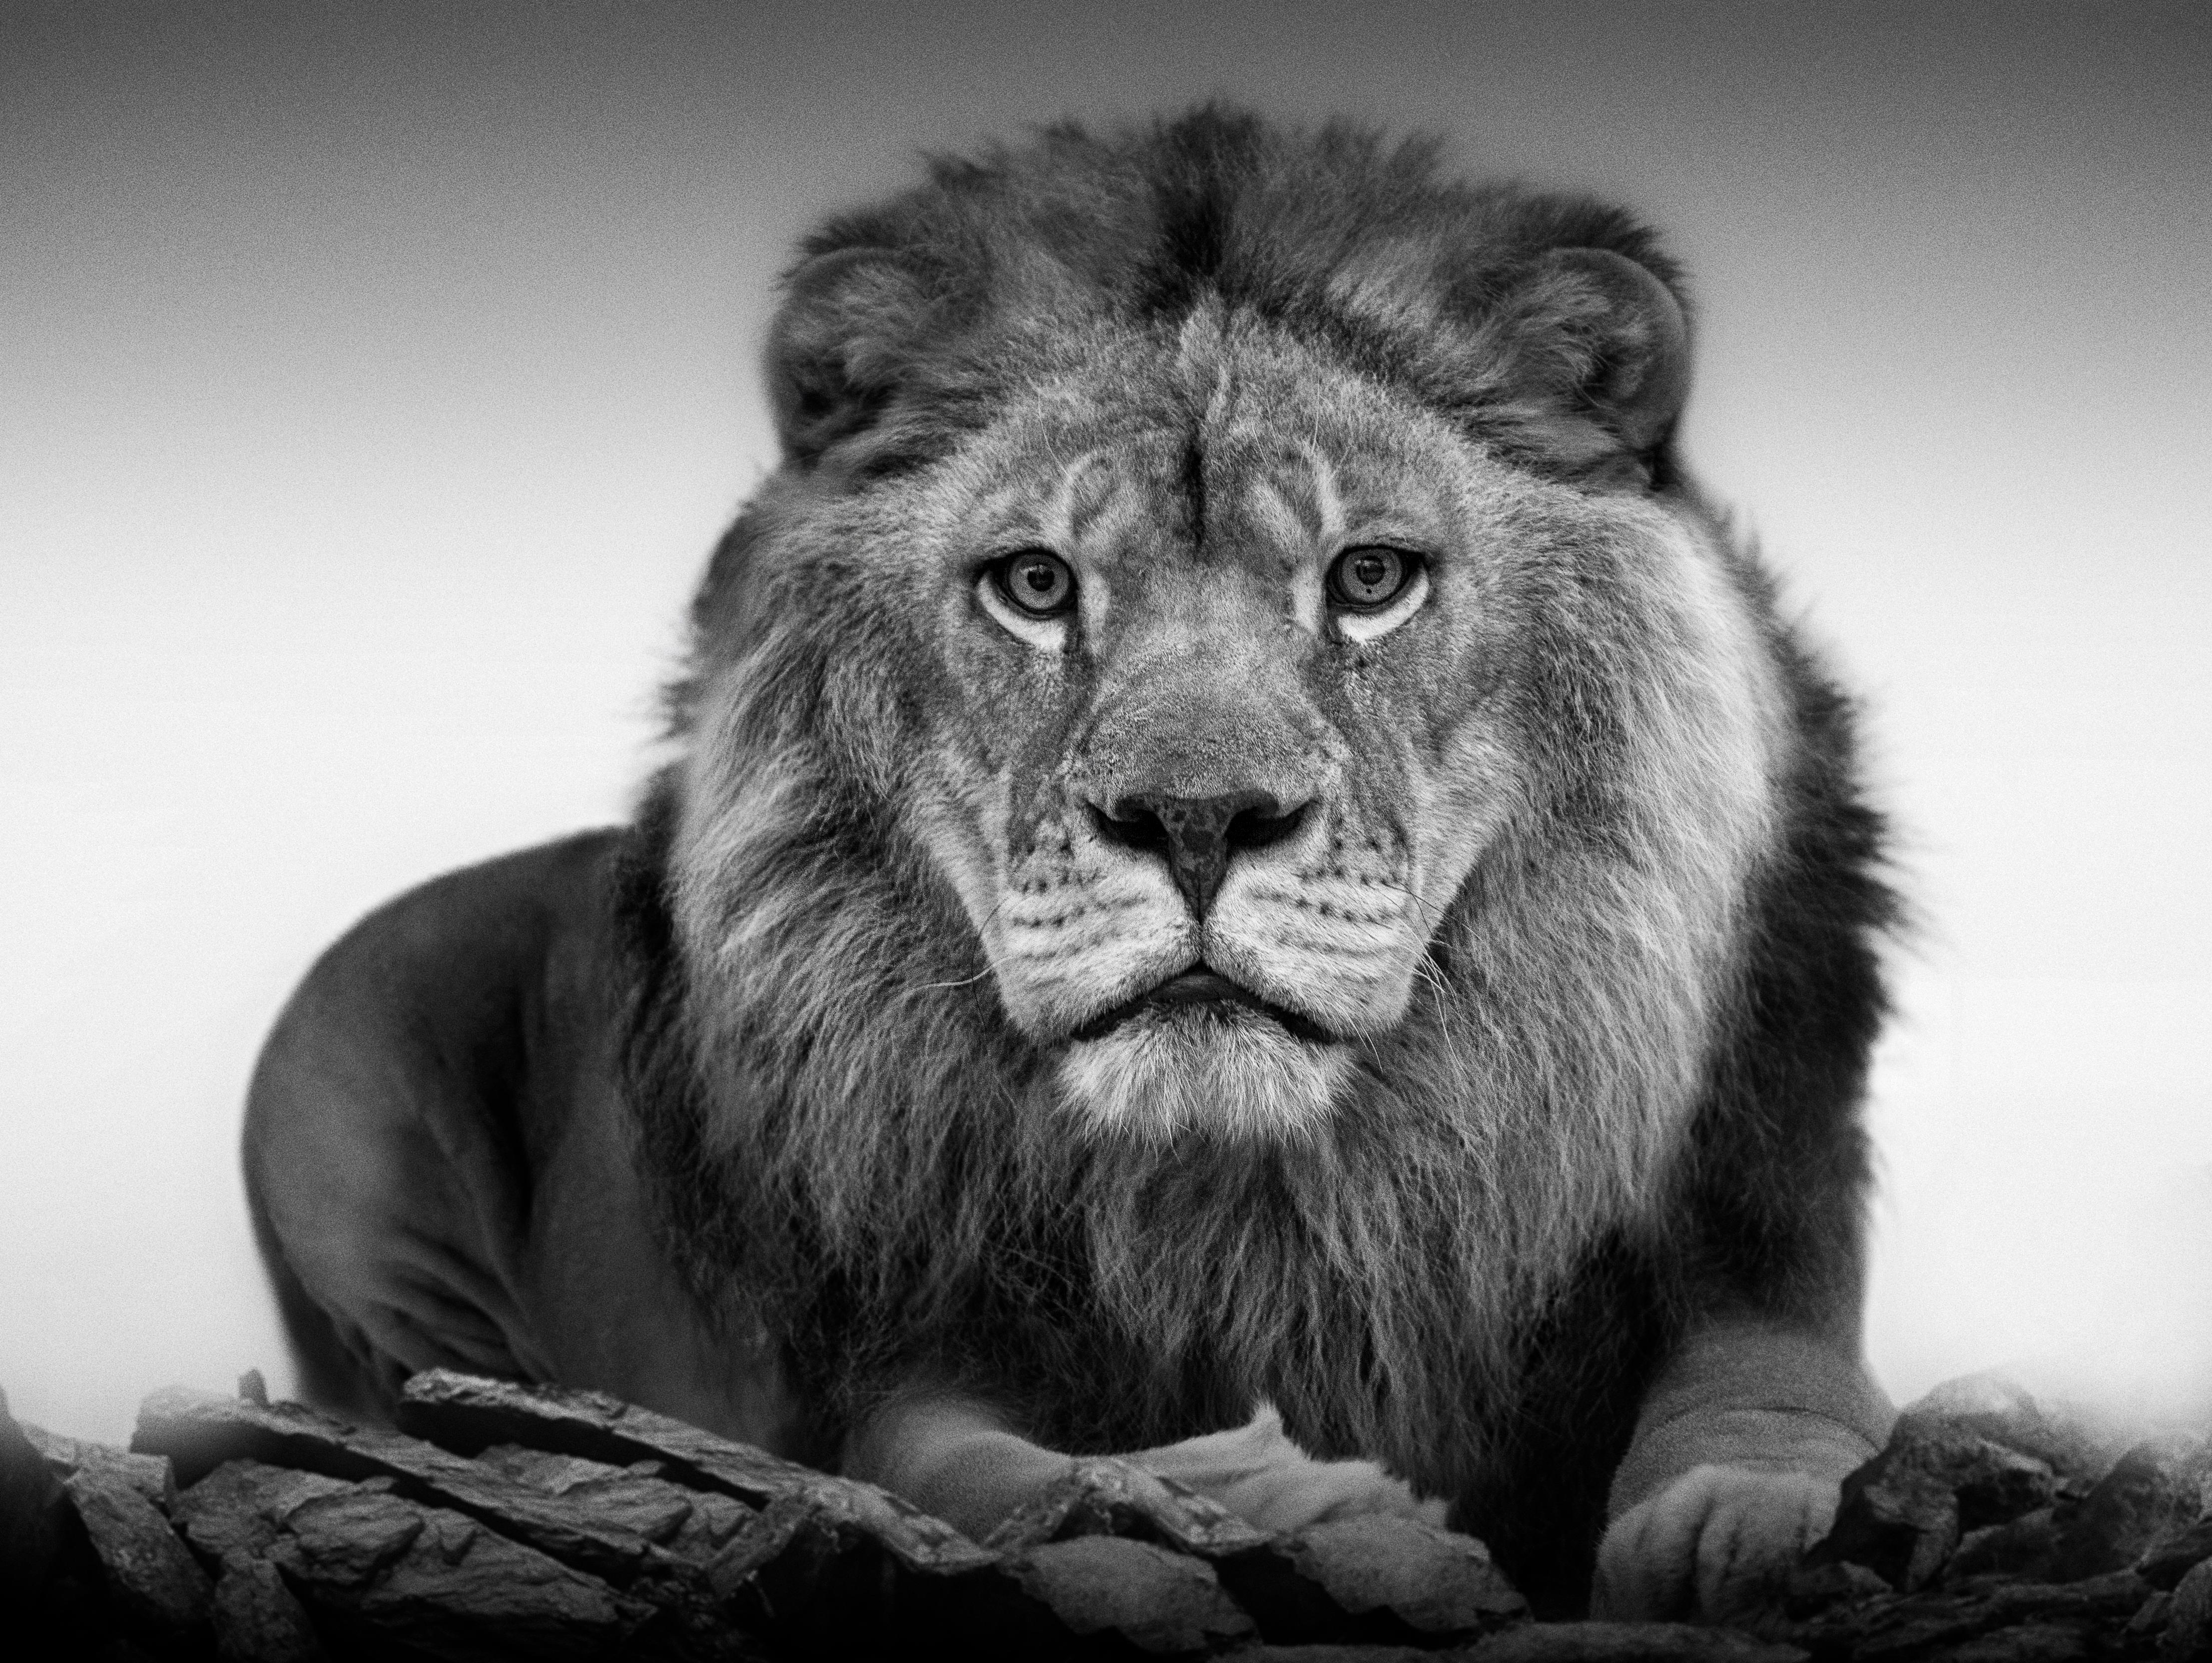 Shane Russeck - 1stdibs SPECIAL Lion Portrait - 20x30 Contemporary Black  and White Photography For Sale at 1stDibs